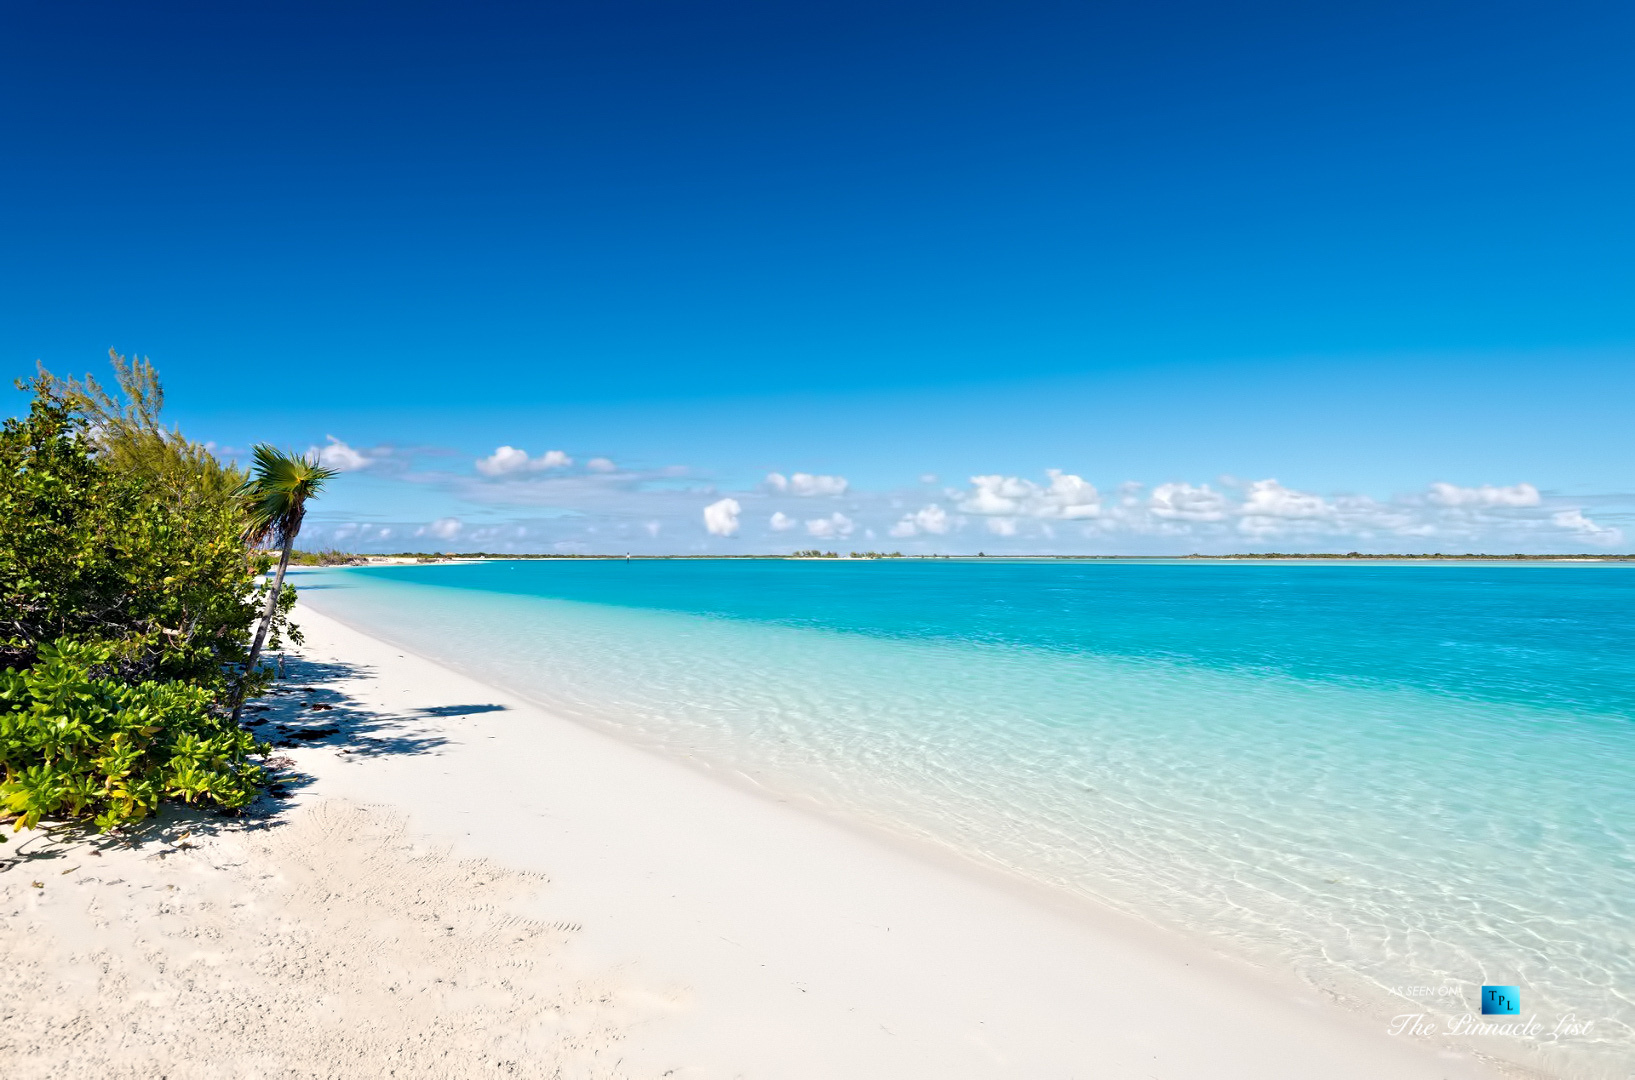 Villa Aquazure - Providenciales, Turks and Caicos Islands